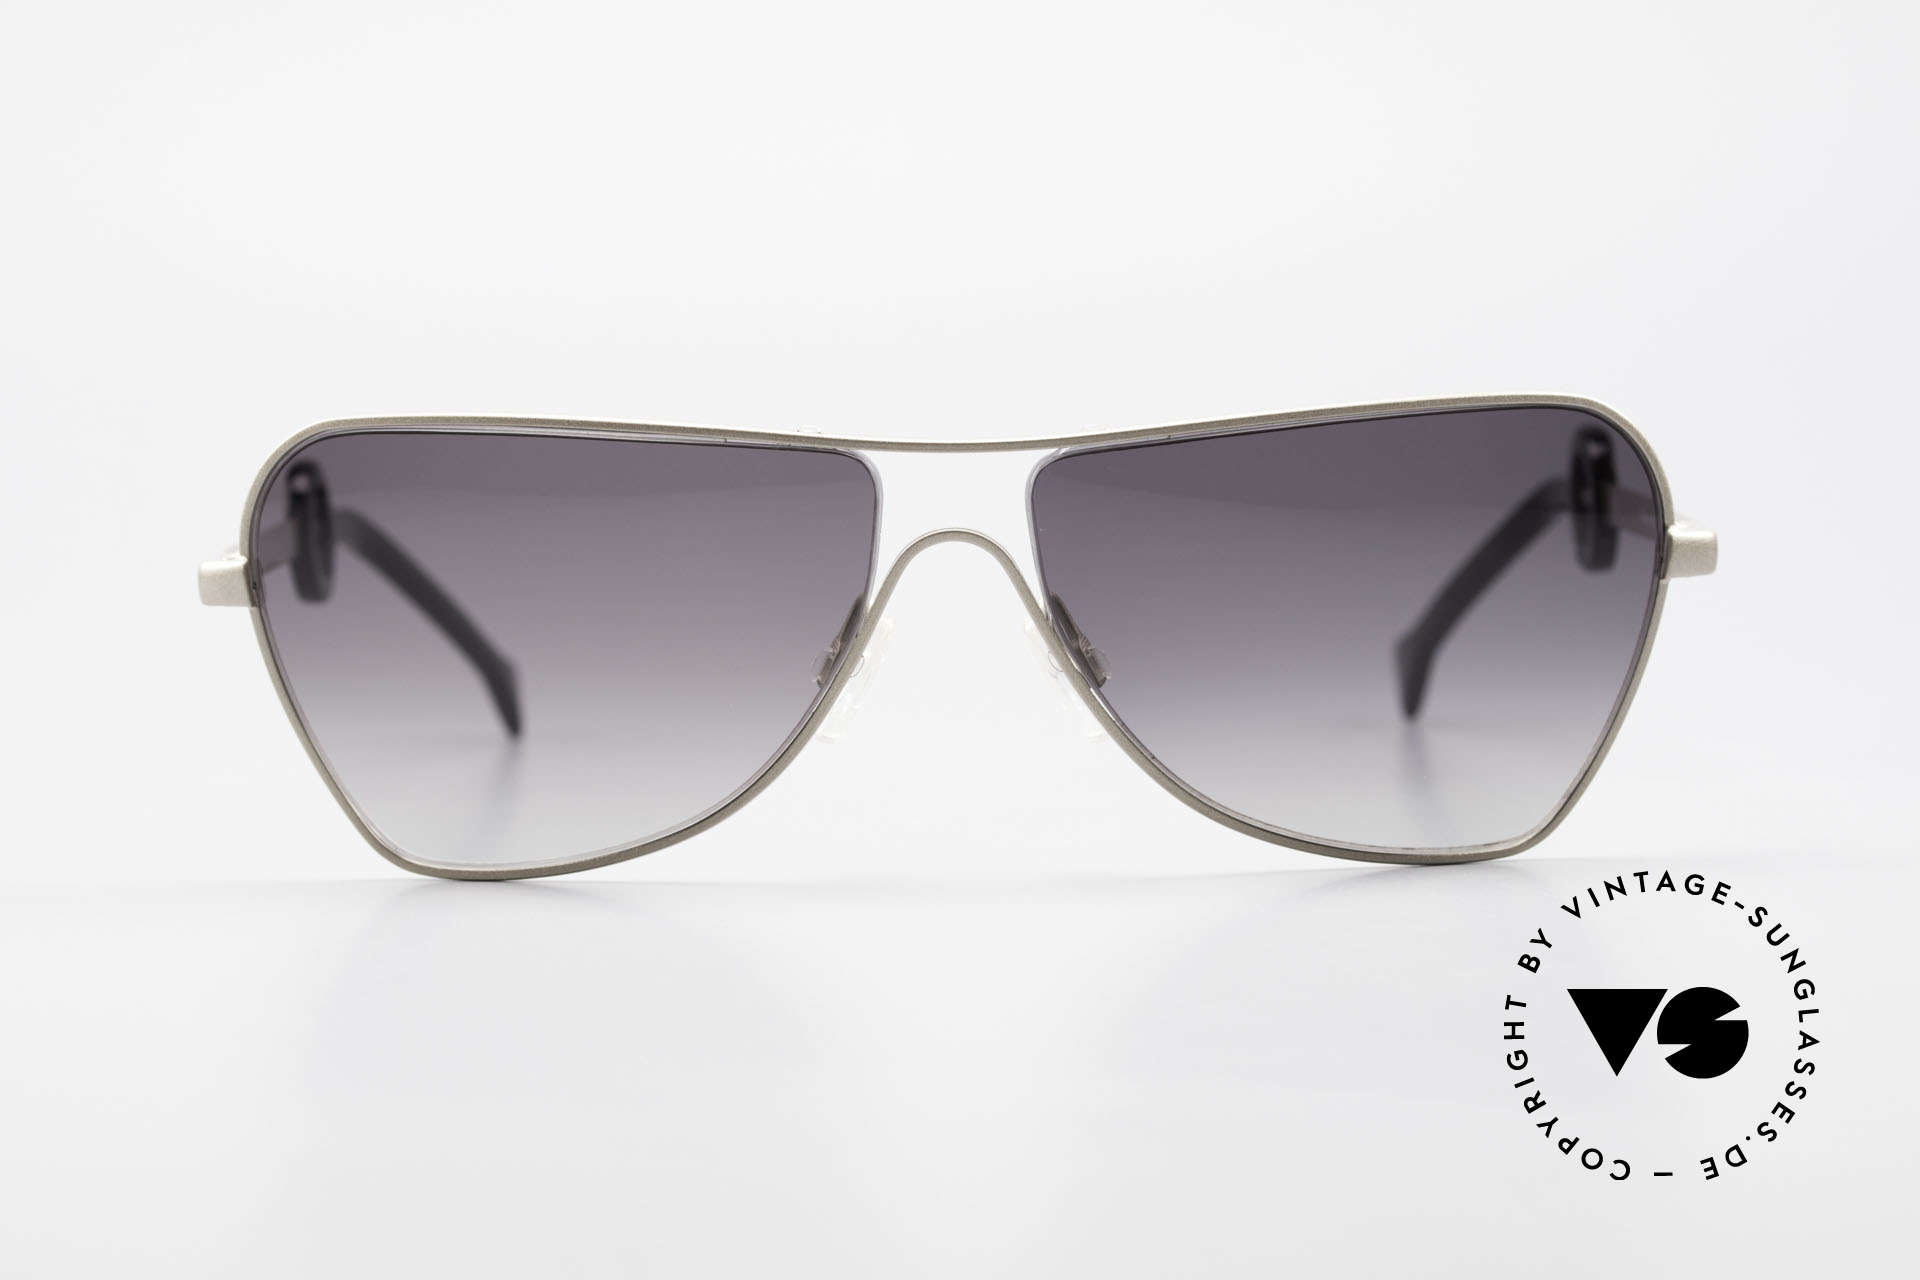 Theo Belgium Stetson Extraordinary Aviator Shades, founded in 1989 as 'opposite pole' to the 'mainstream', Made for Men and Women